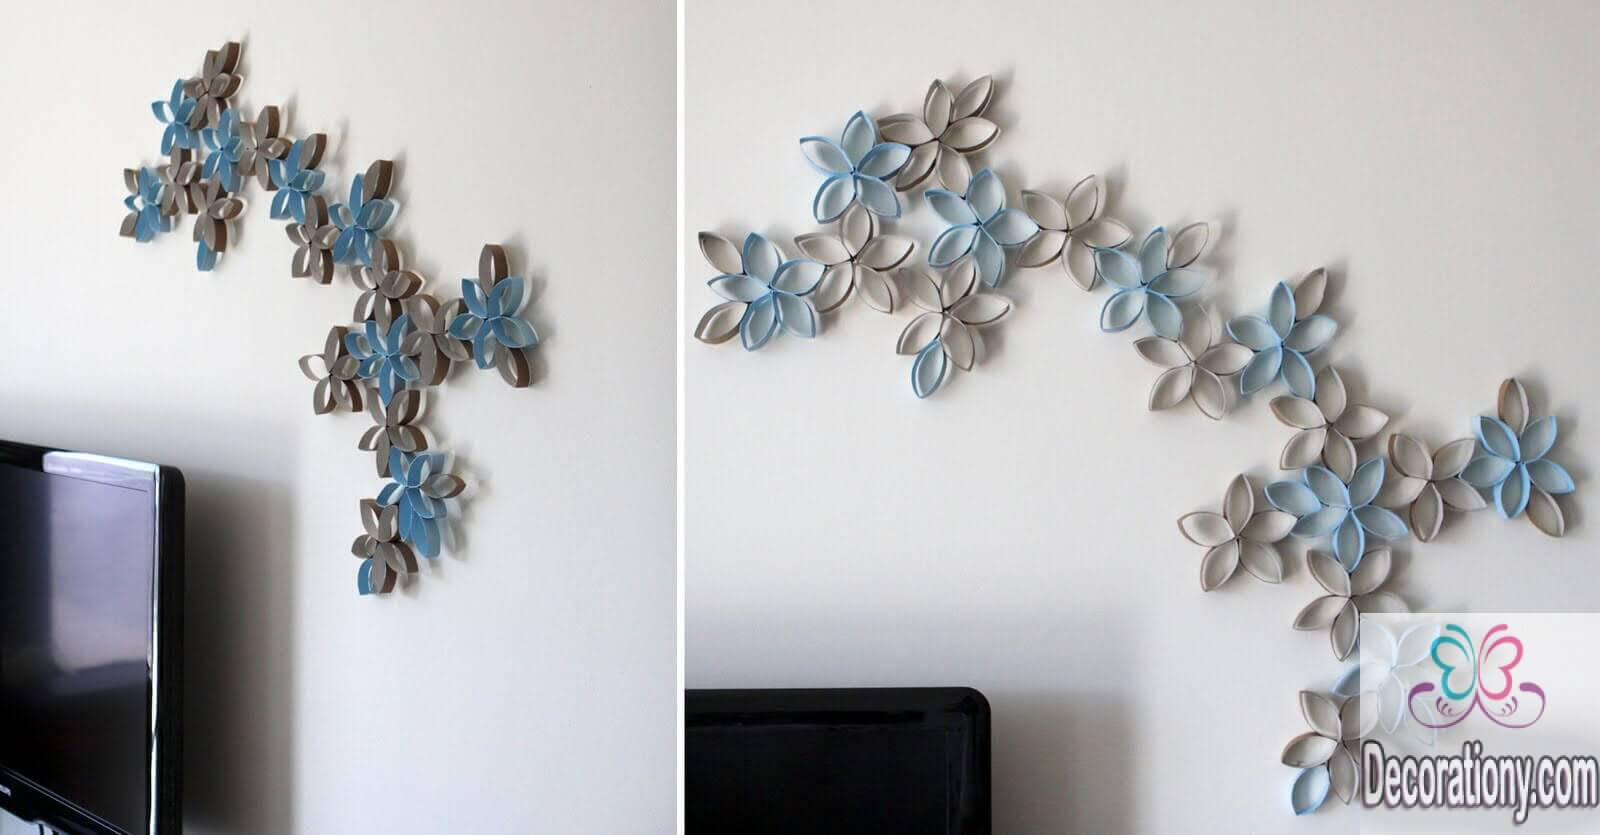 Diy Room Decor Wall Decor : Living room wall decor ideas